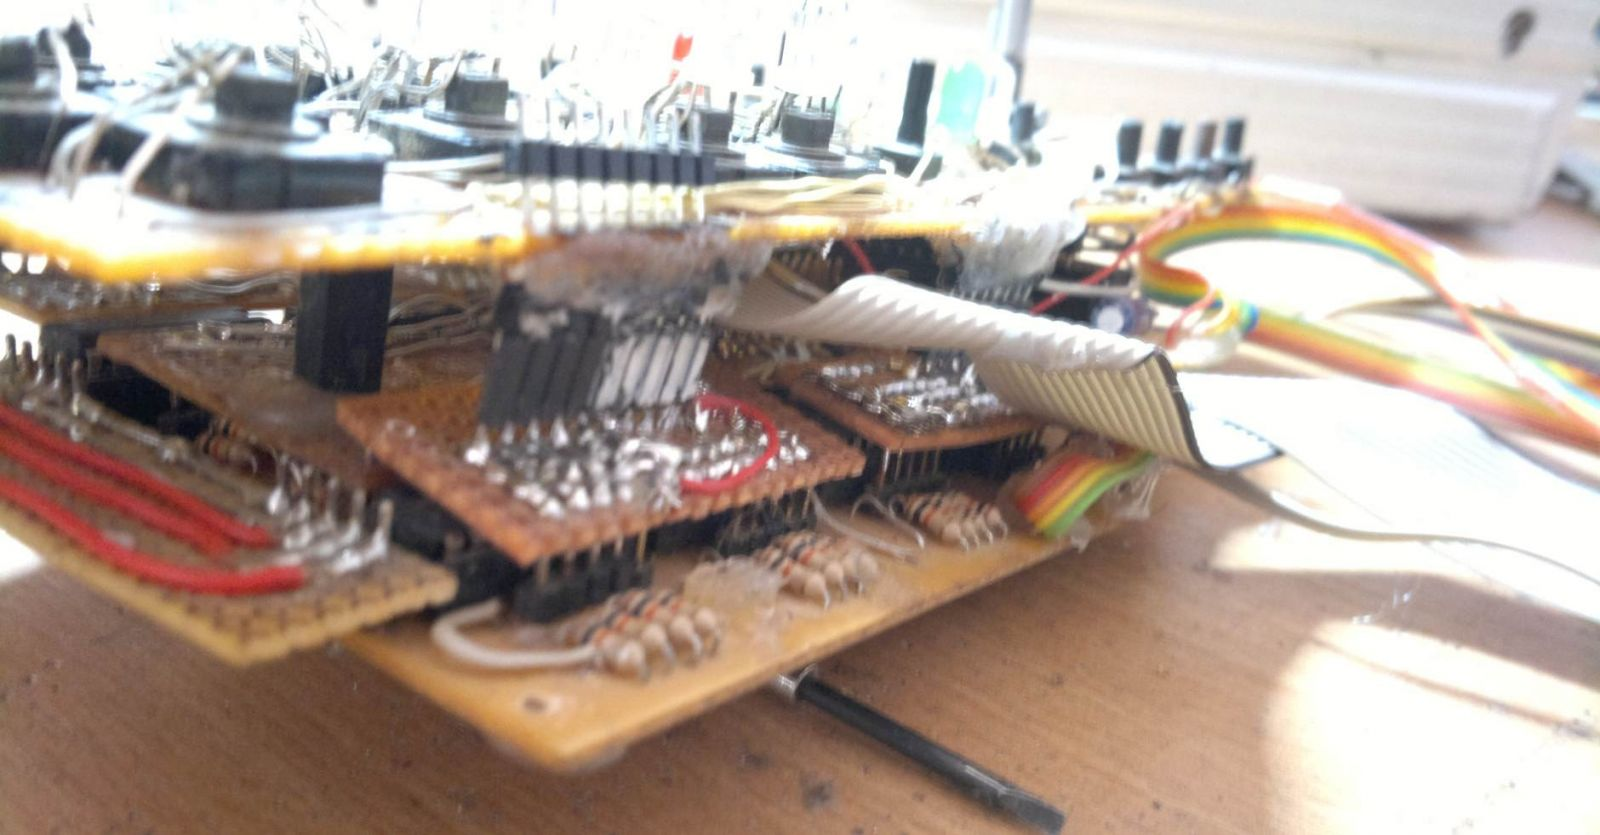 Control Board - 2x DinX4, 1x DoutX4 stacked